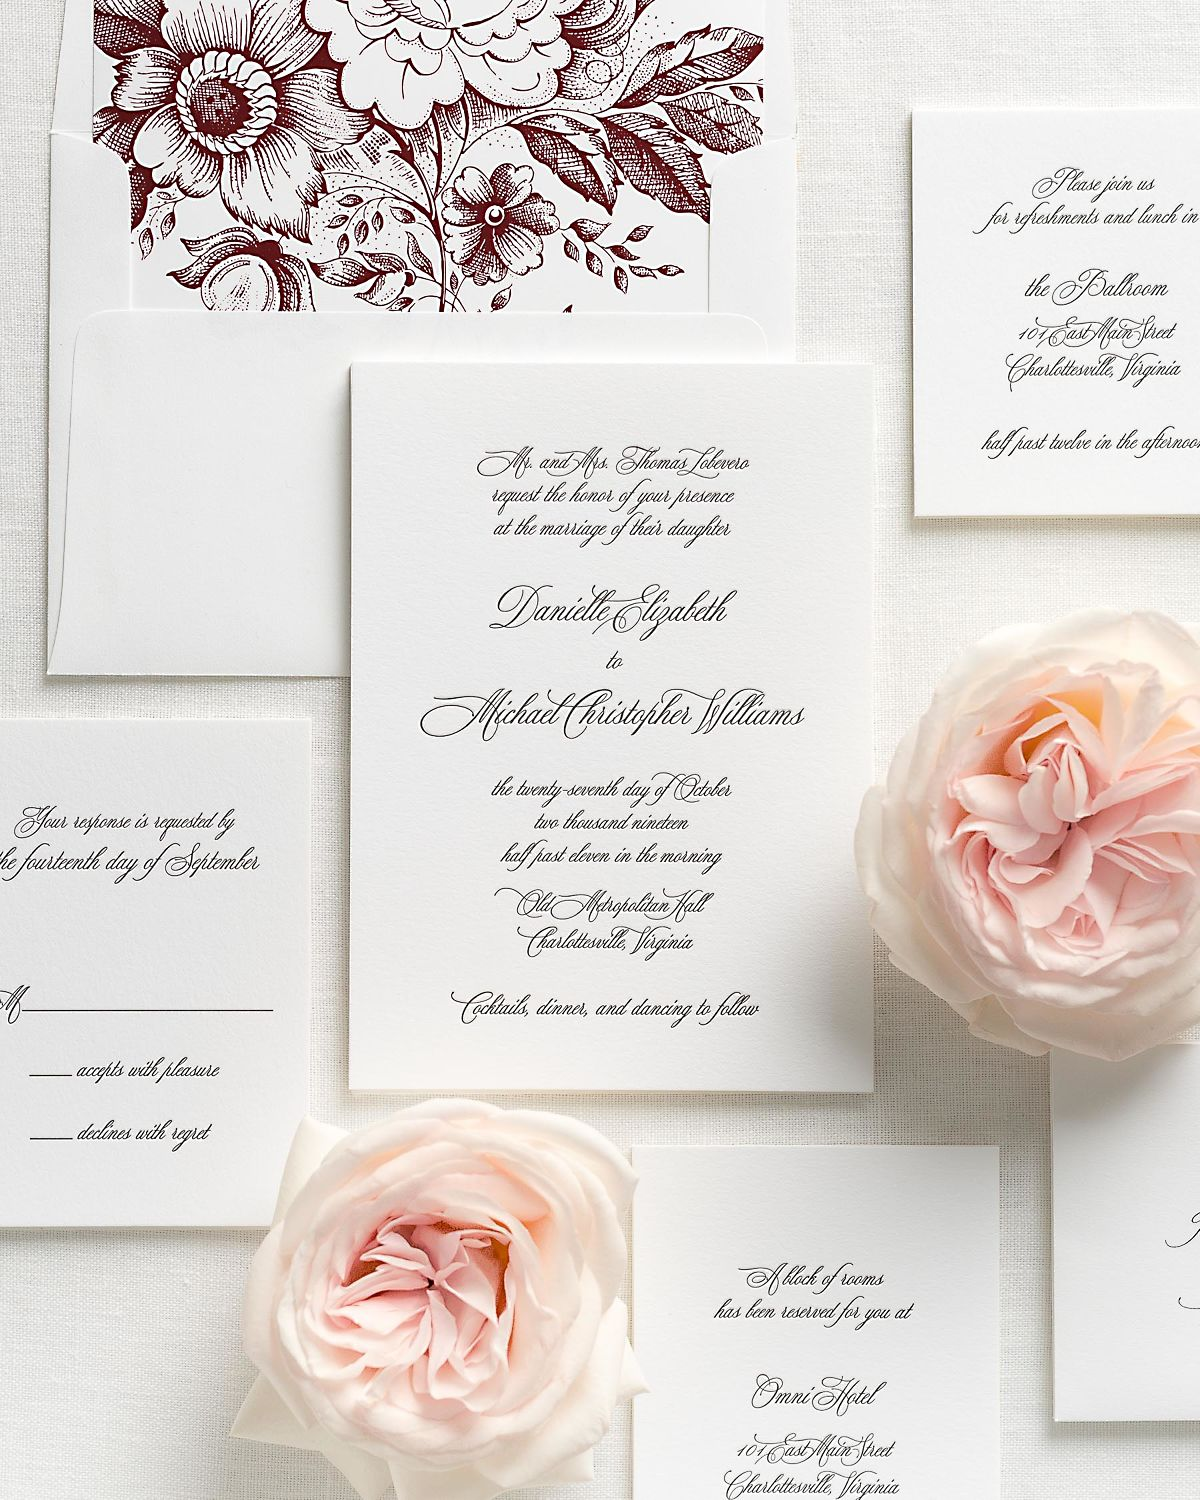 Letterpress Wedding Invitations with Cabernet Garden Rose Envelope Liner and Matching Accessories